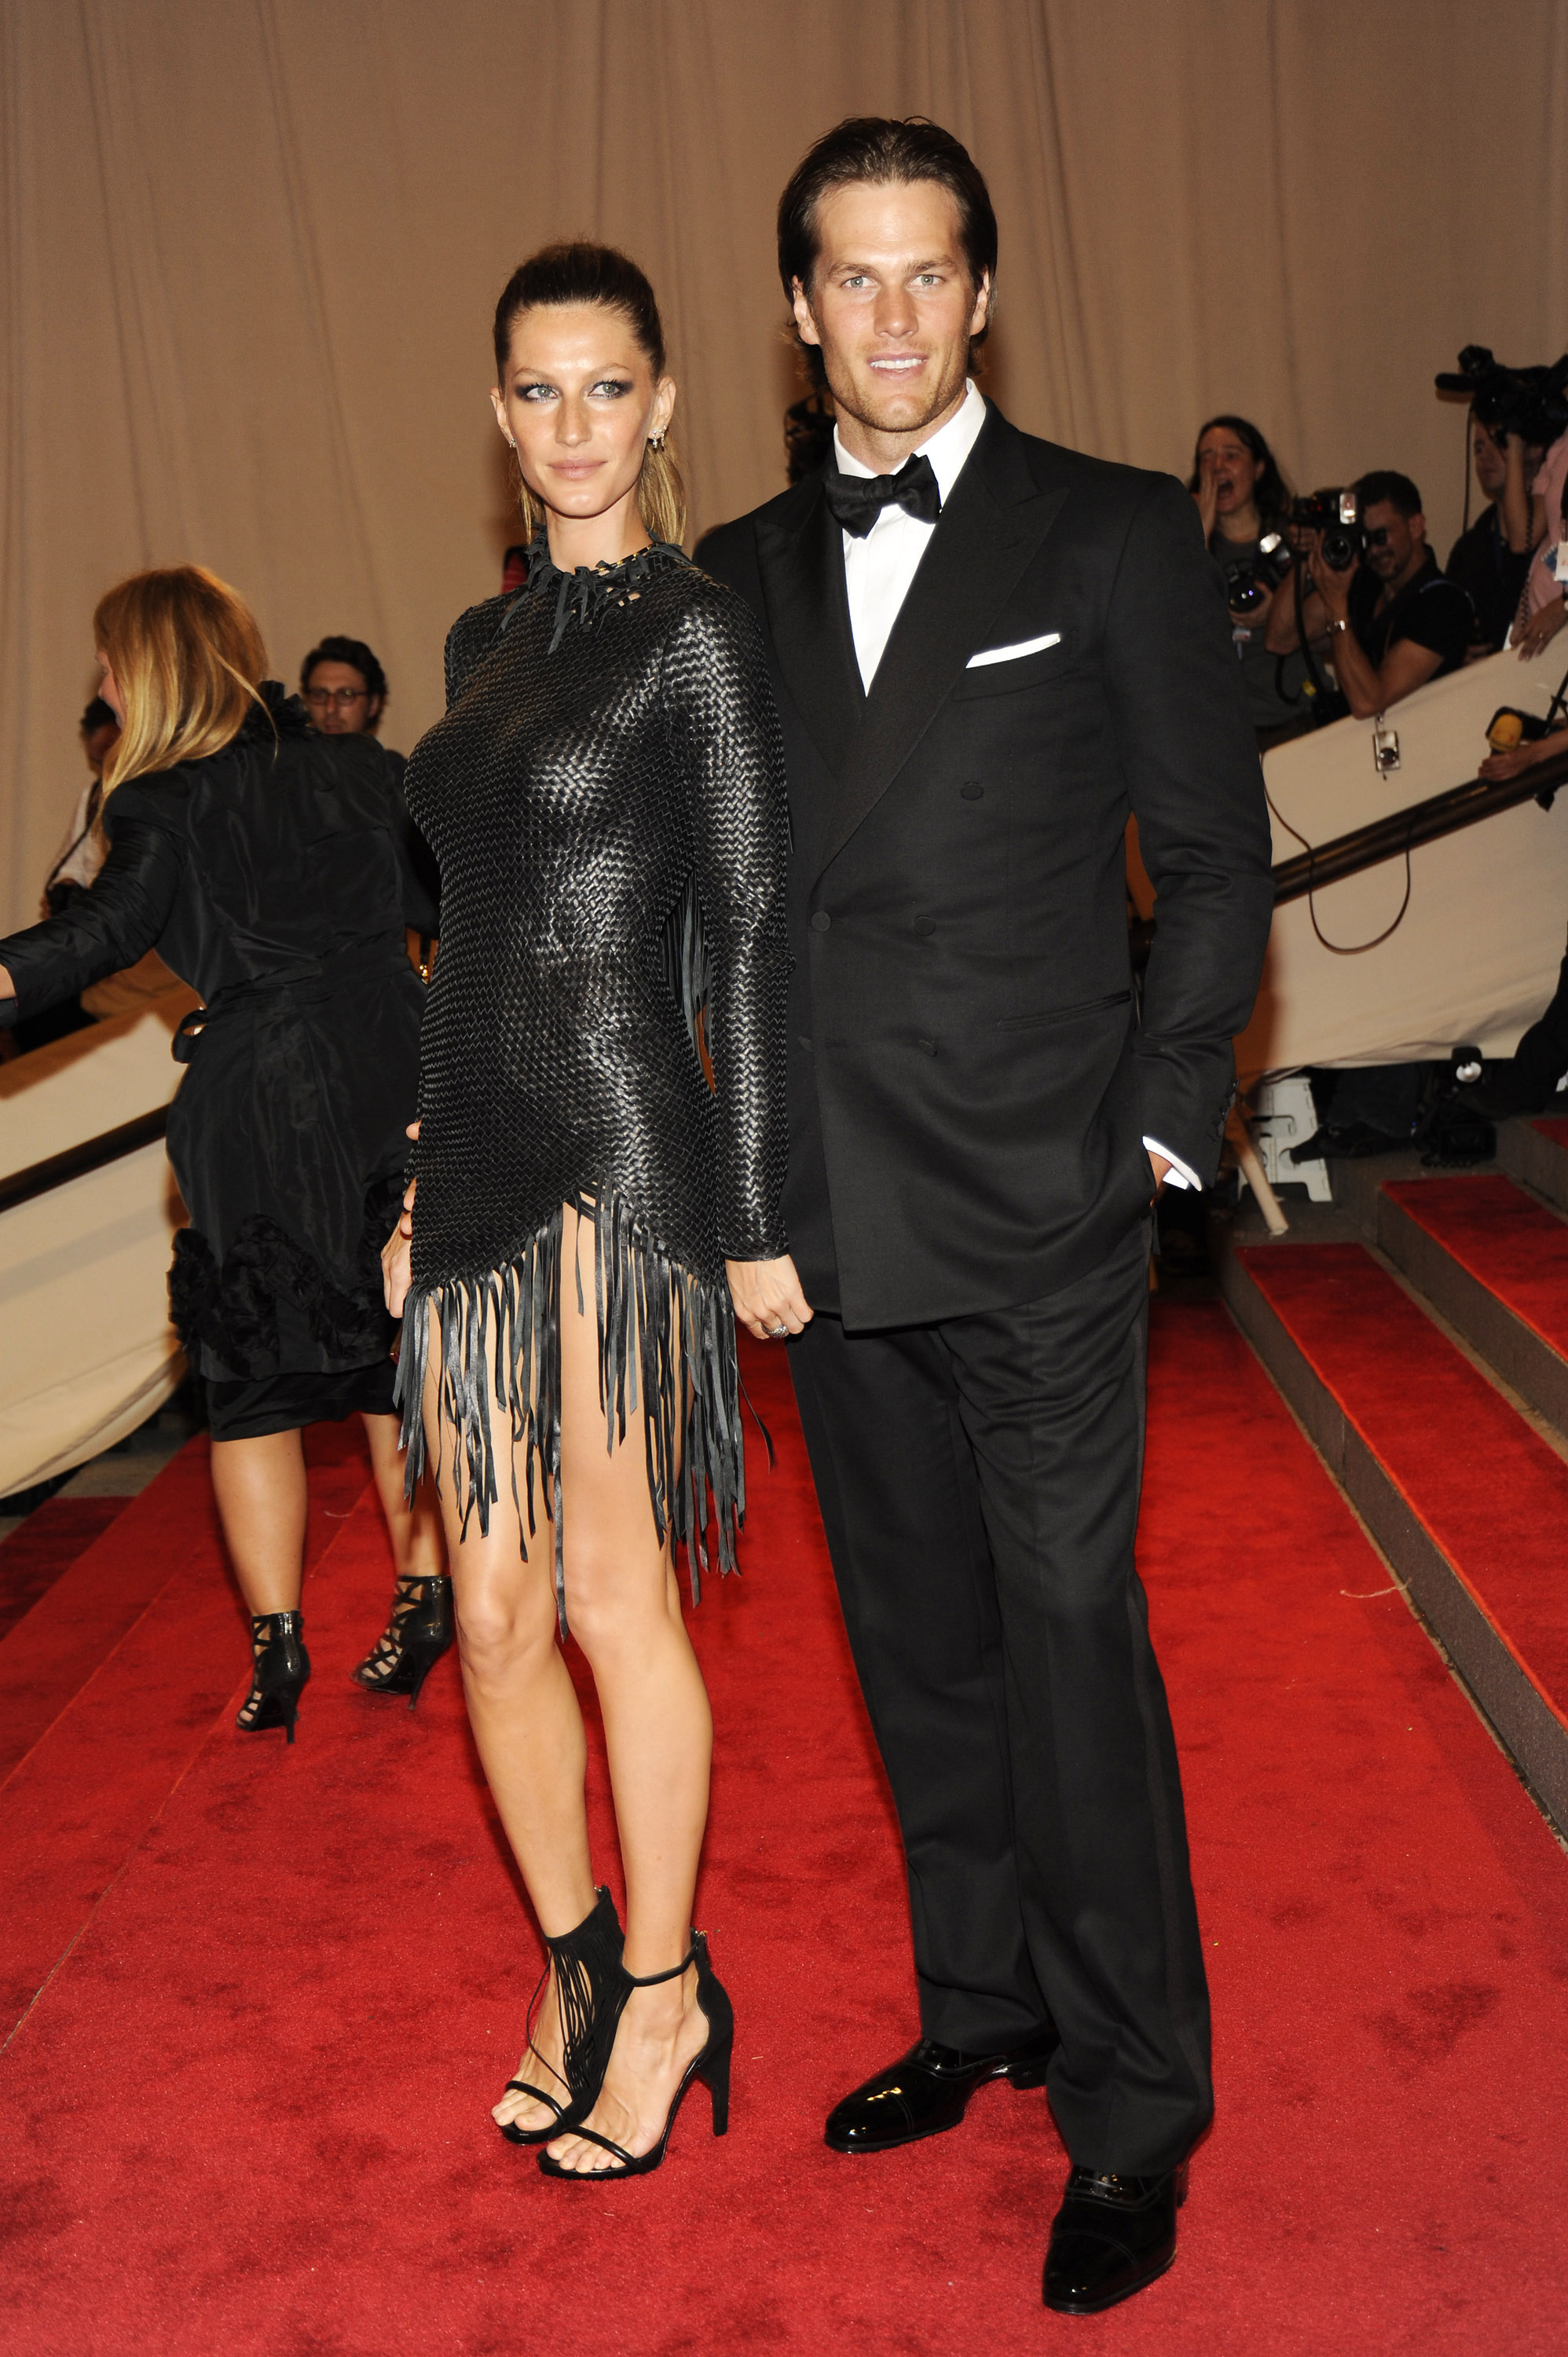 Gisele Bundchen and Tom Brady attend the Costume Institute Gala Benefit to celebrate the opening of the  American Woman: Fashioning a National Identity  exhibition at The Metropolitan Museum of Art on May 8, 2010 in New York City.